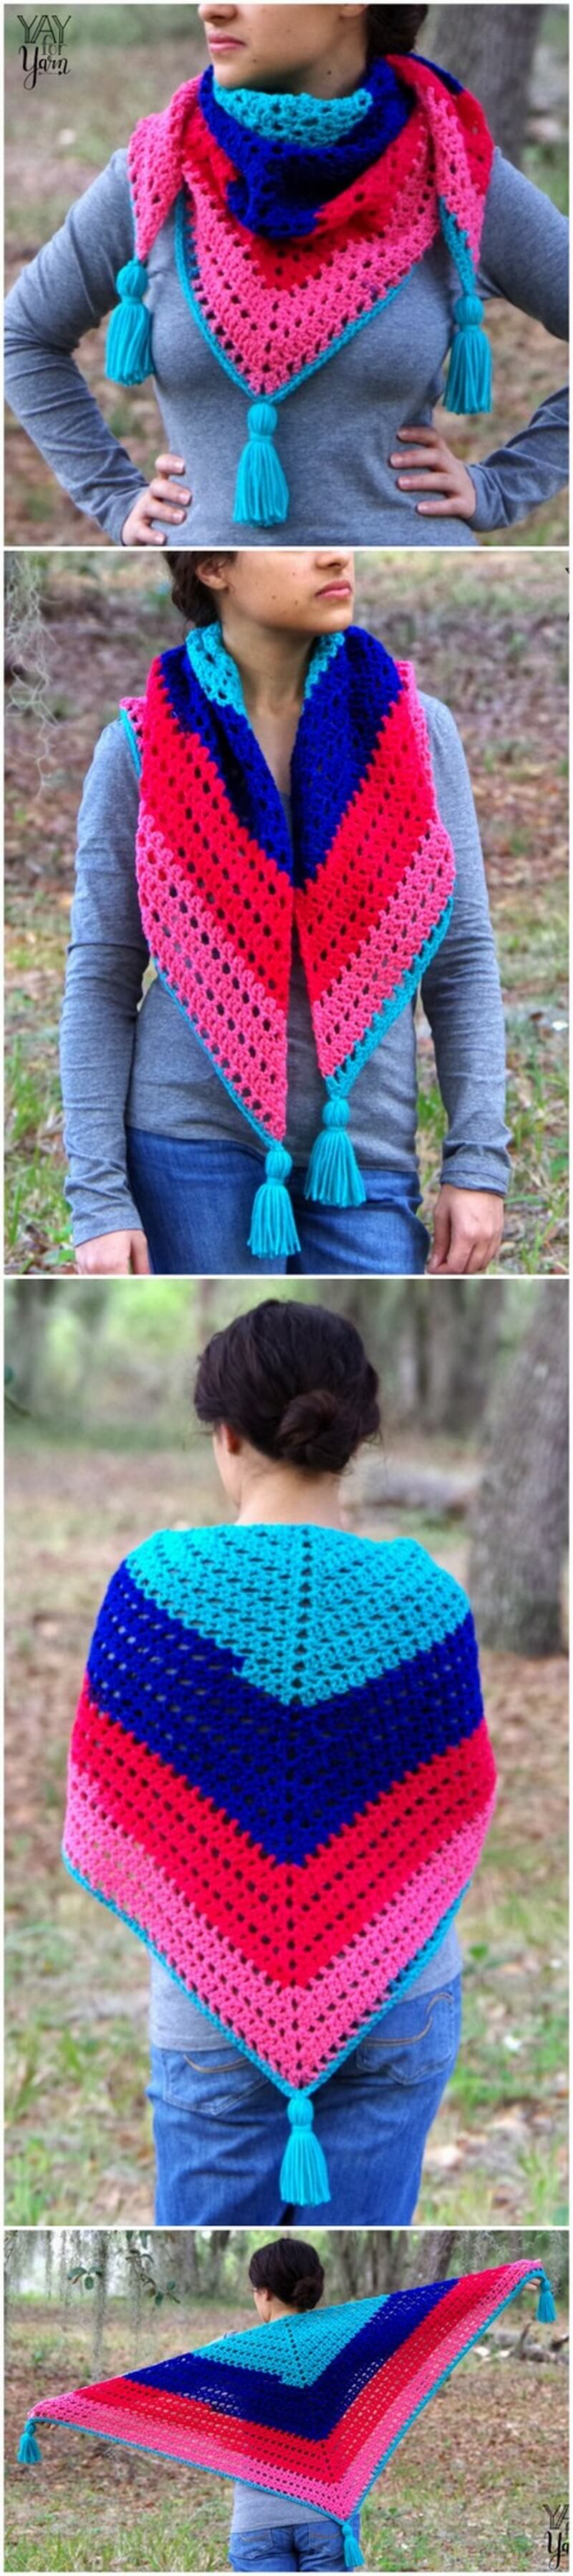 Crochet Shawl Pattern (40)